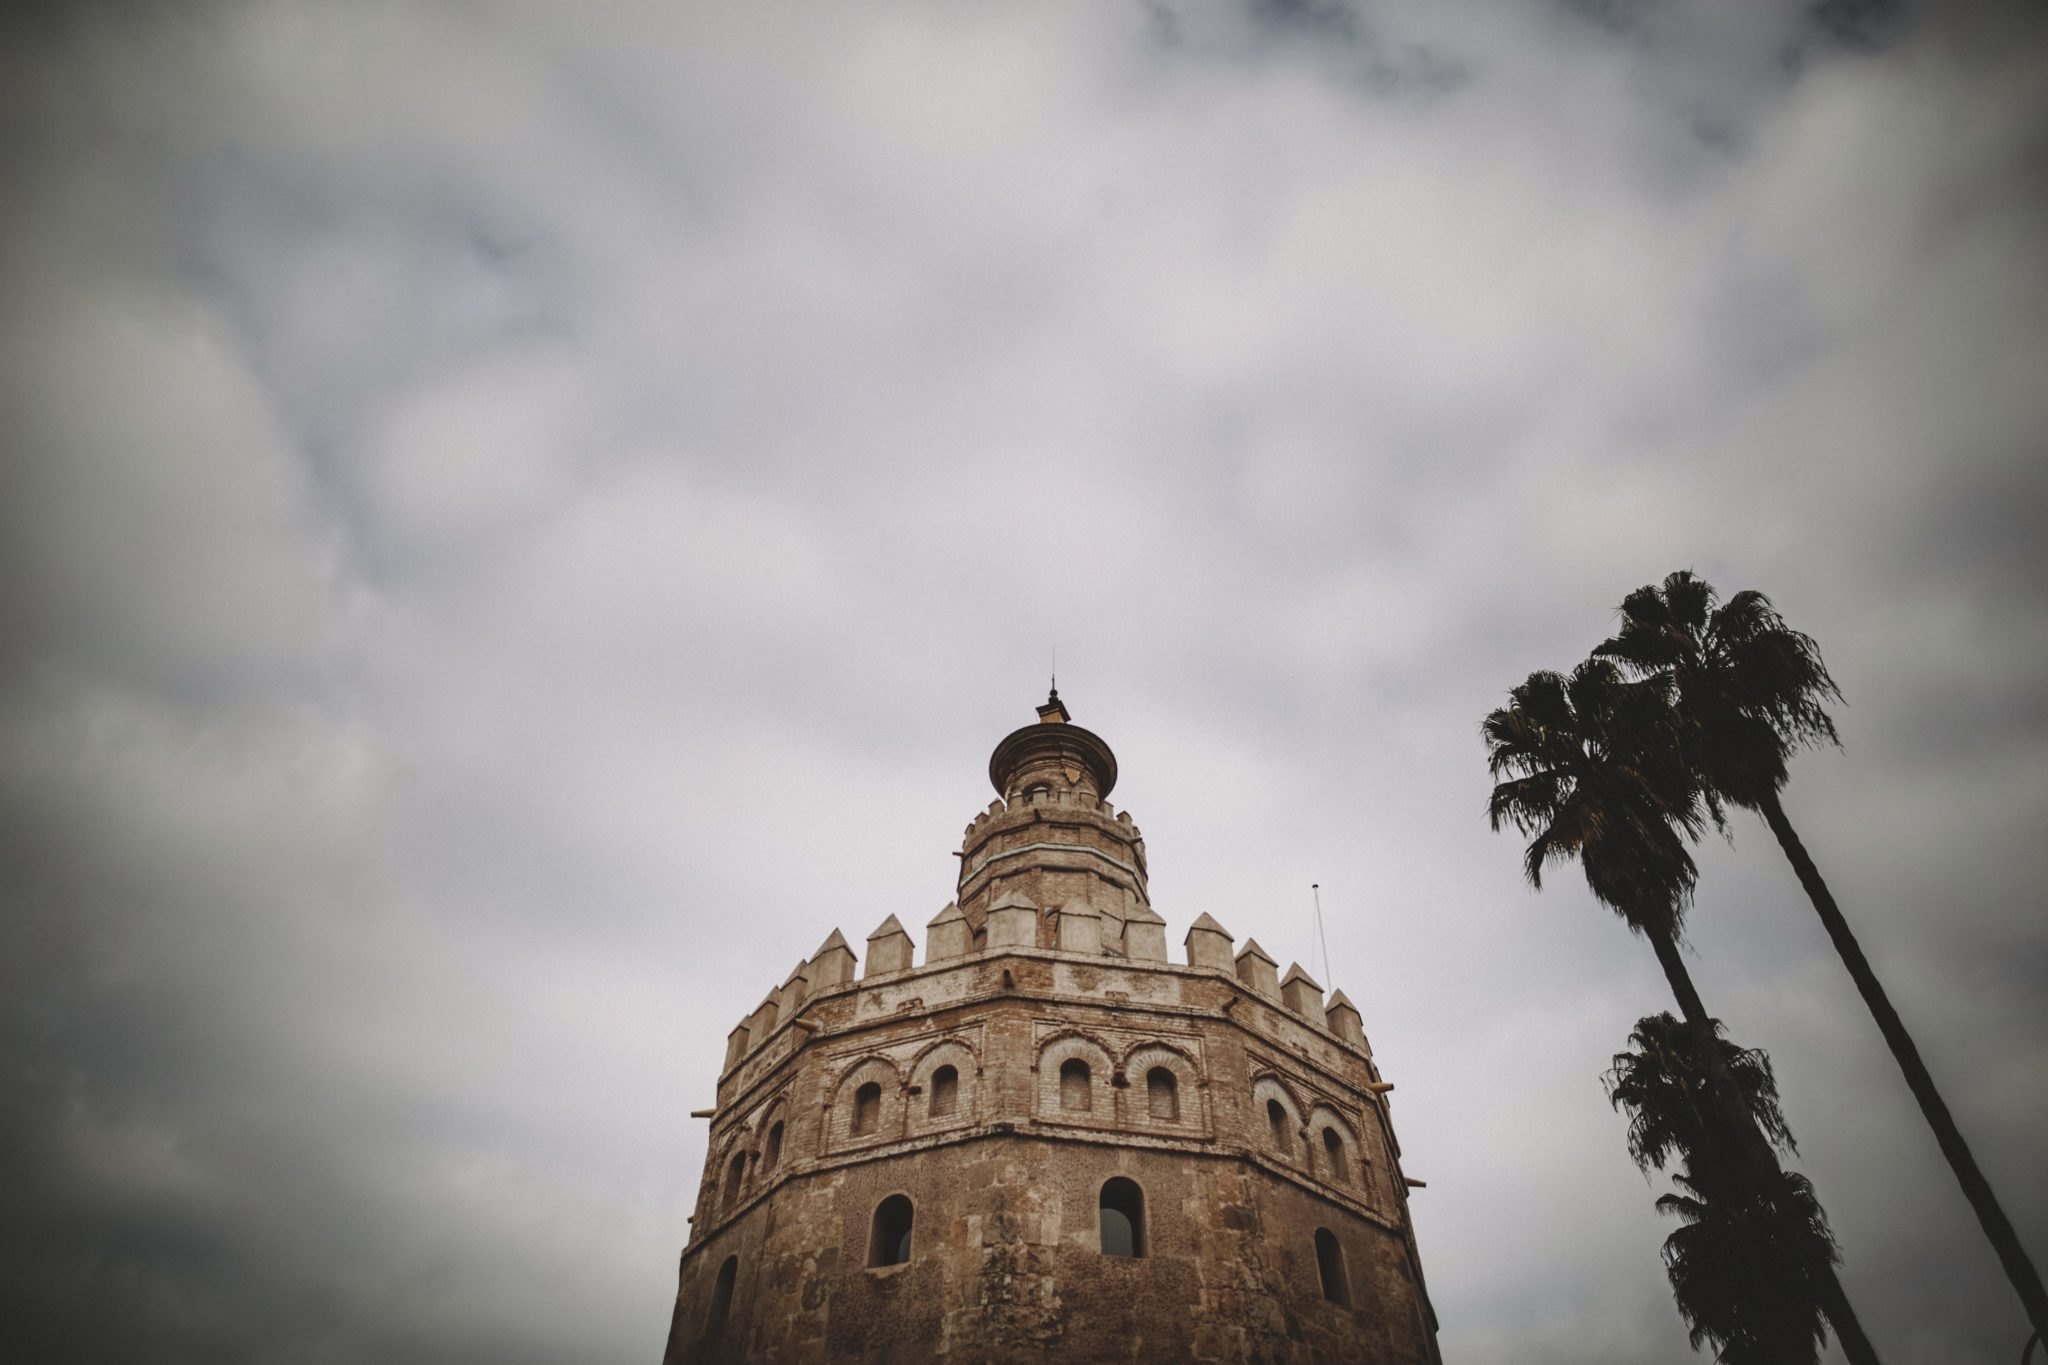 Beautiful picture of el torre de oro